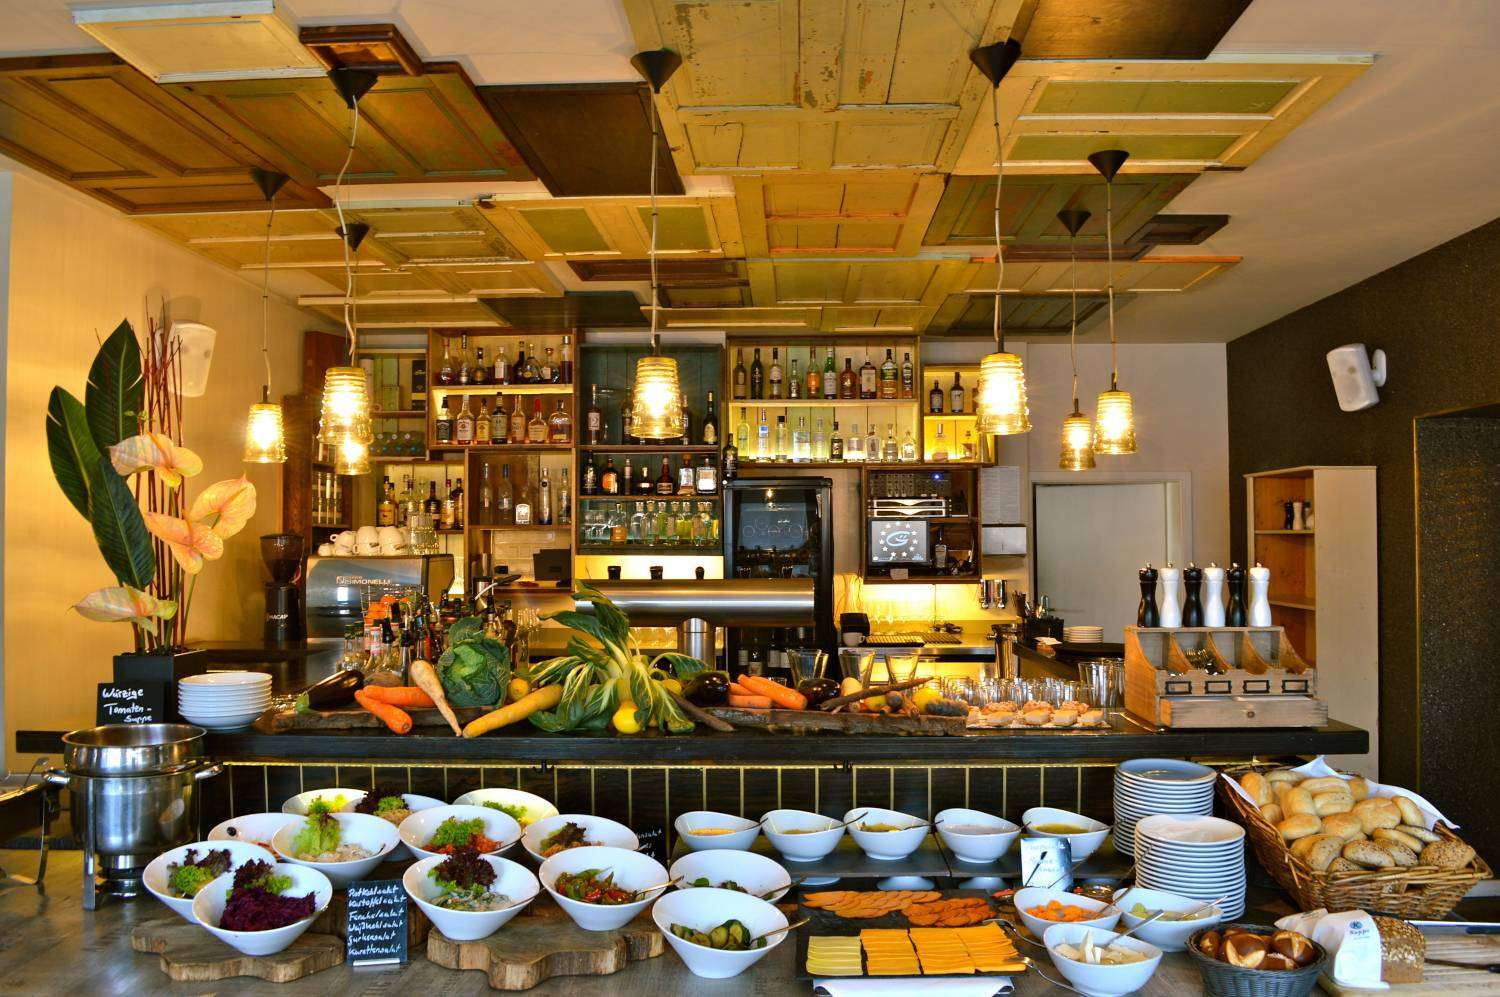 kopps, Berlin – Enjoy local healthy food